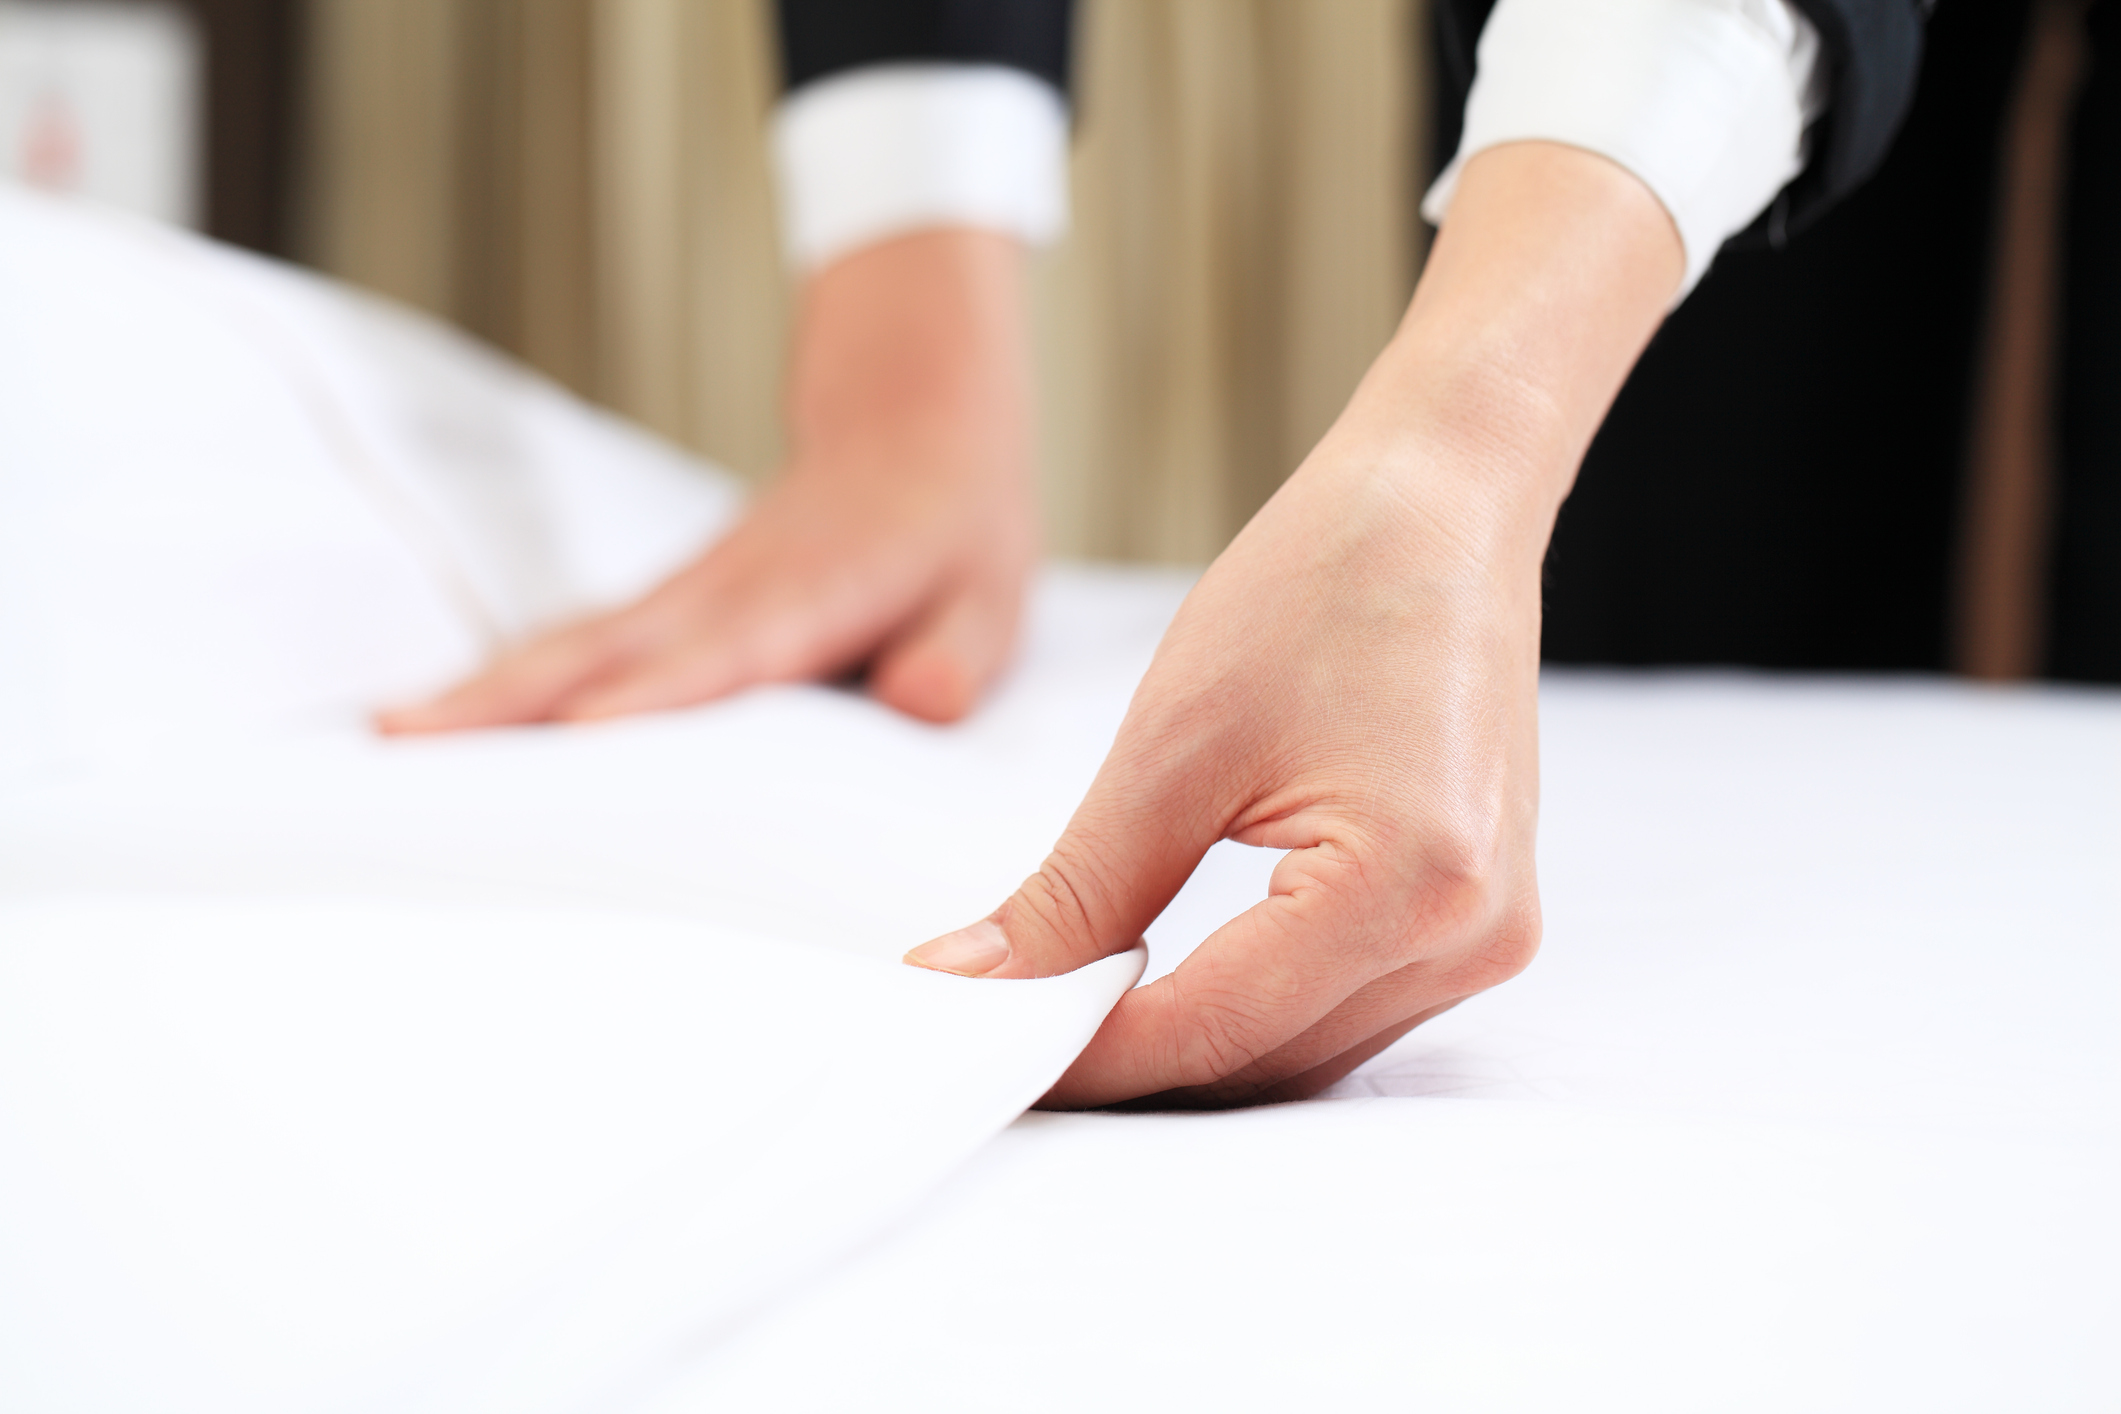 - Housekeeping is important to Villa Infinitum in order to keep it as beautiful as it was when you first stepped through the door. Our Housekeeper will be on hand regularly to ensure perfect order of the Villa, including a nightly turn down service.